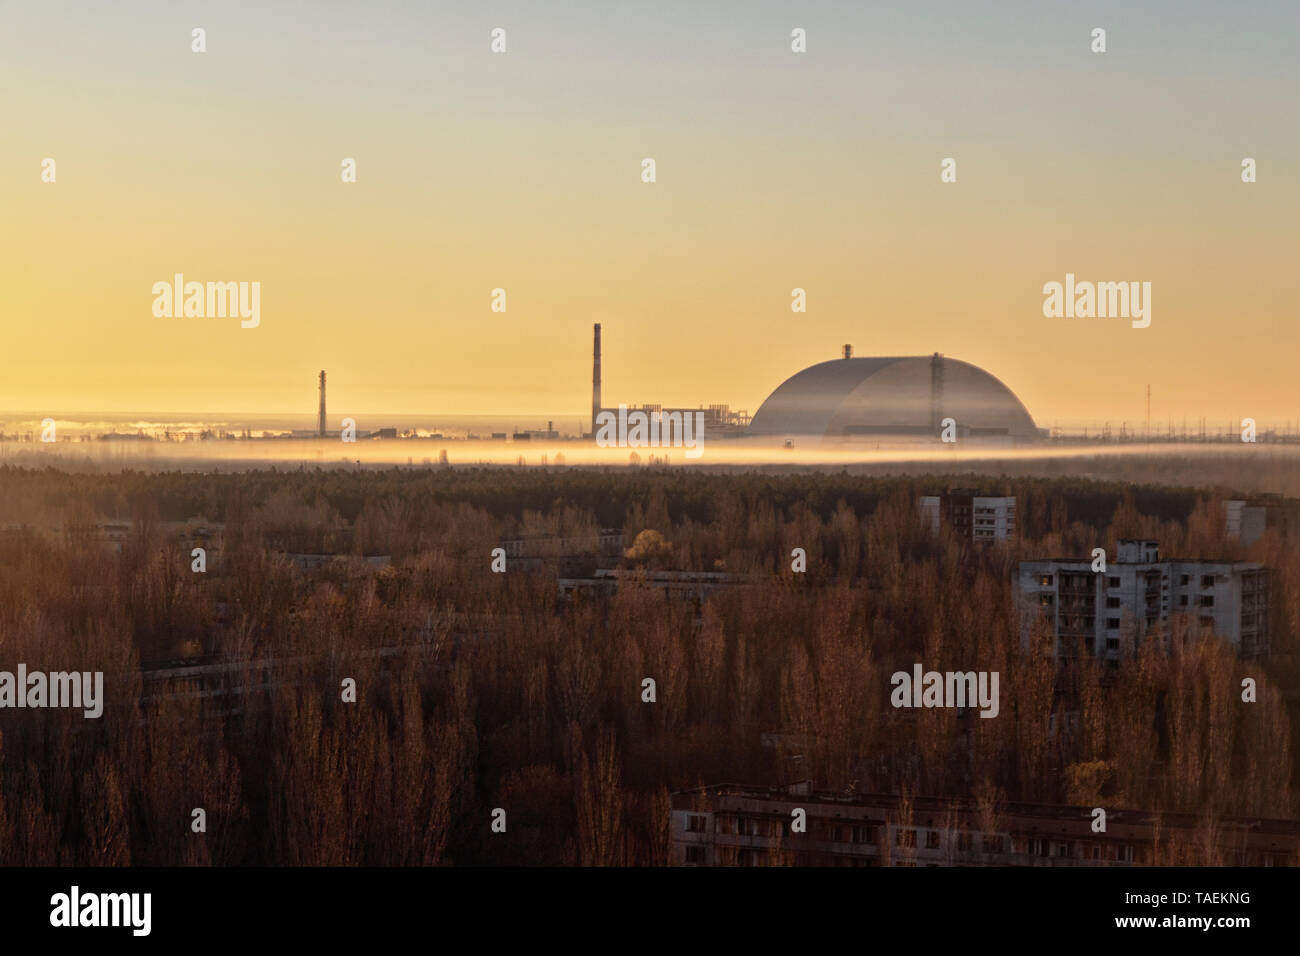 Cityscape view of Pripyat, Ukraine, inside the Chernobyl Exclusion Zone, with the Chernobyl Reactor in the background Stock Photo